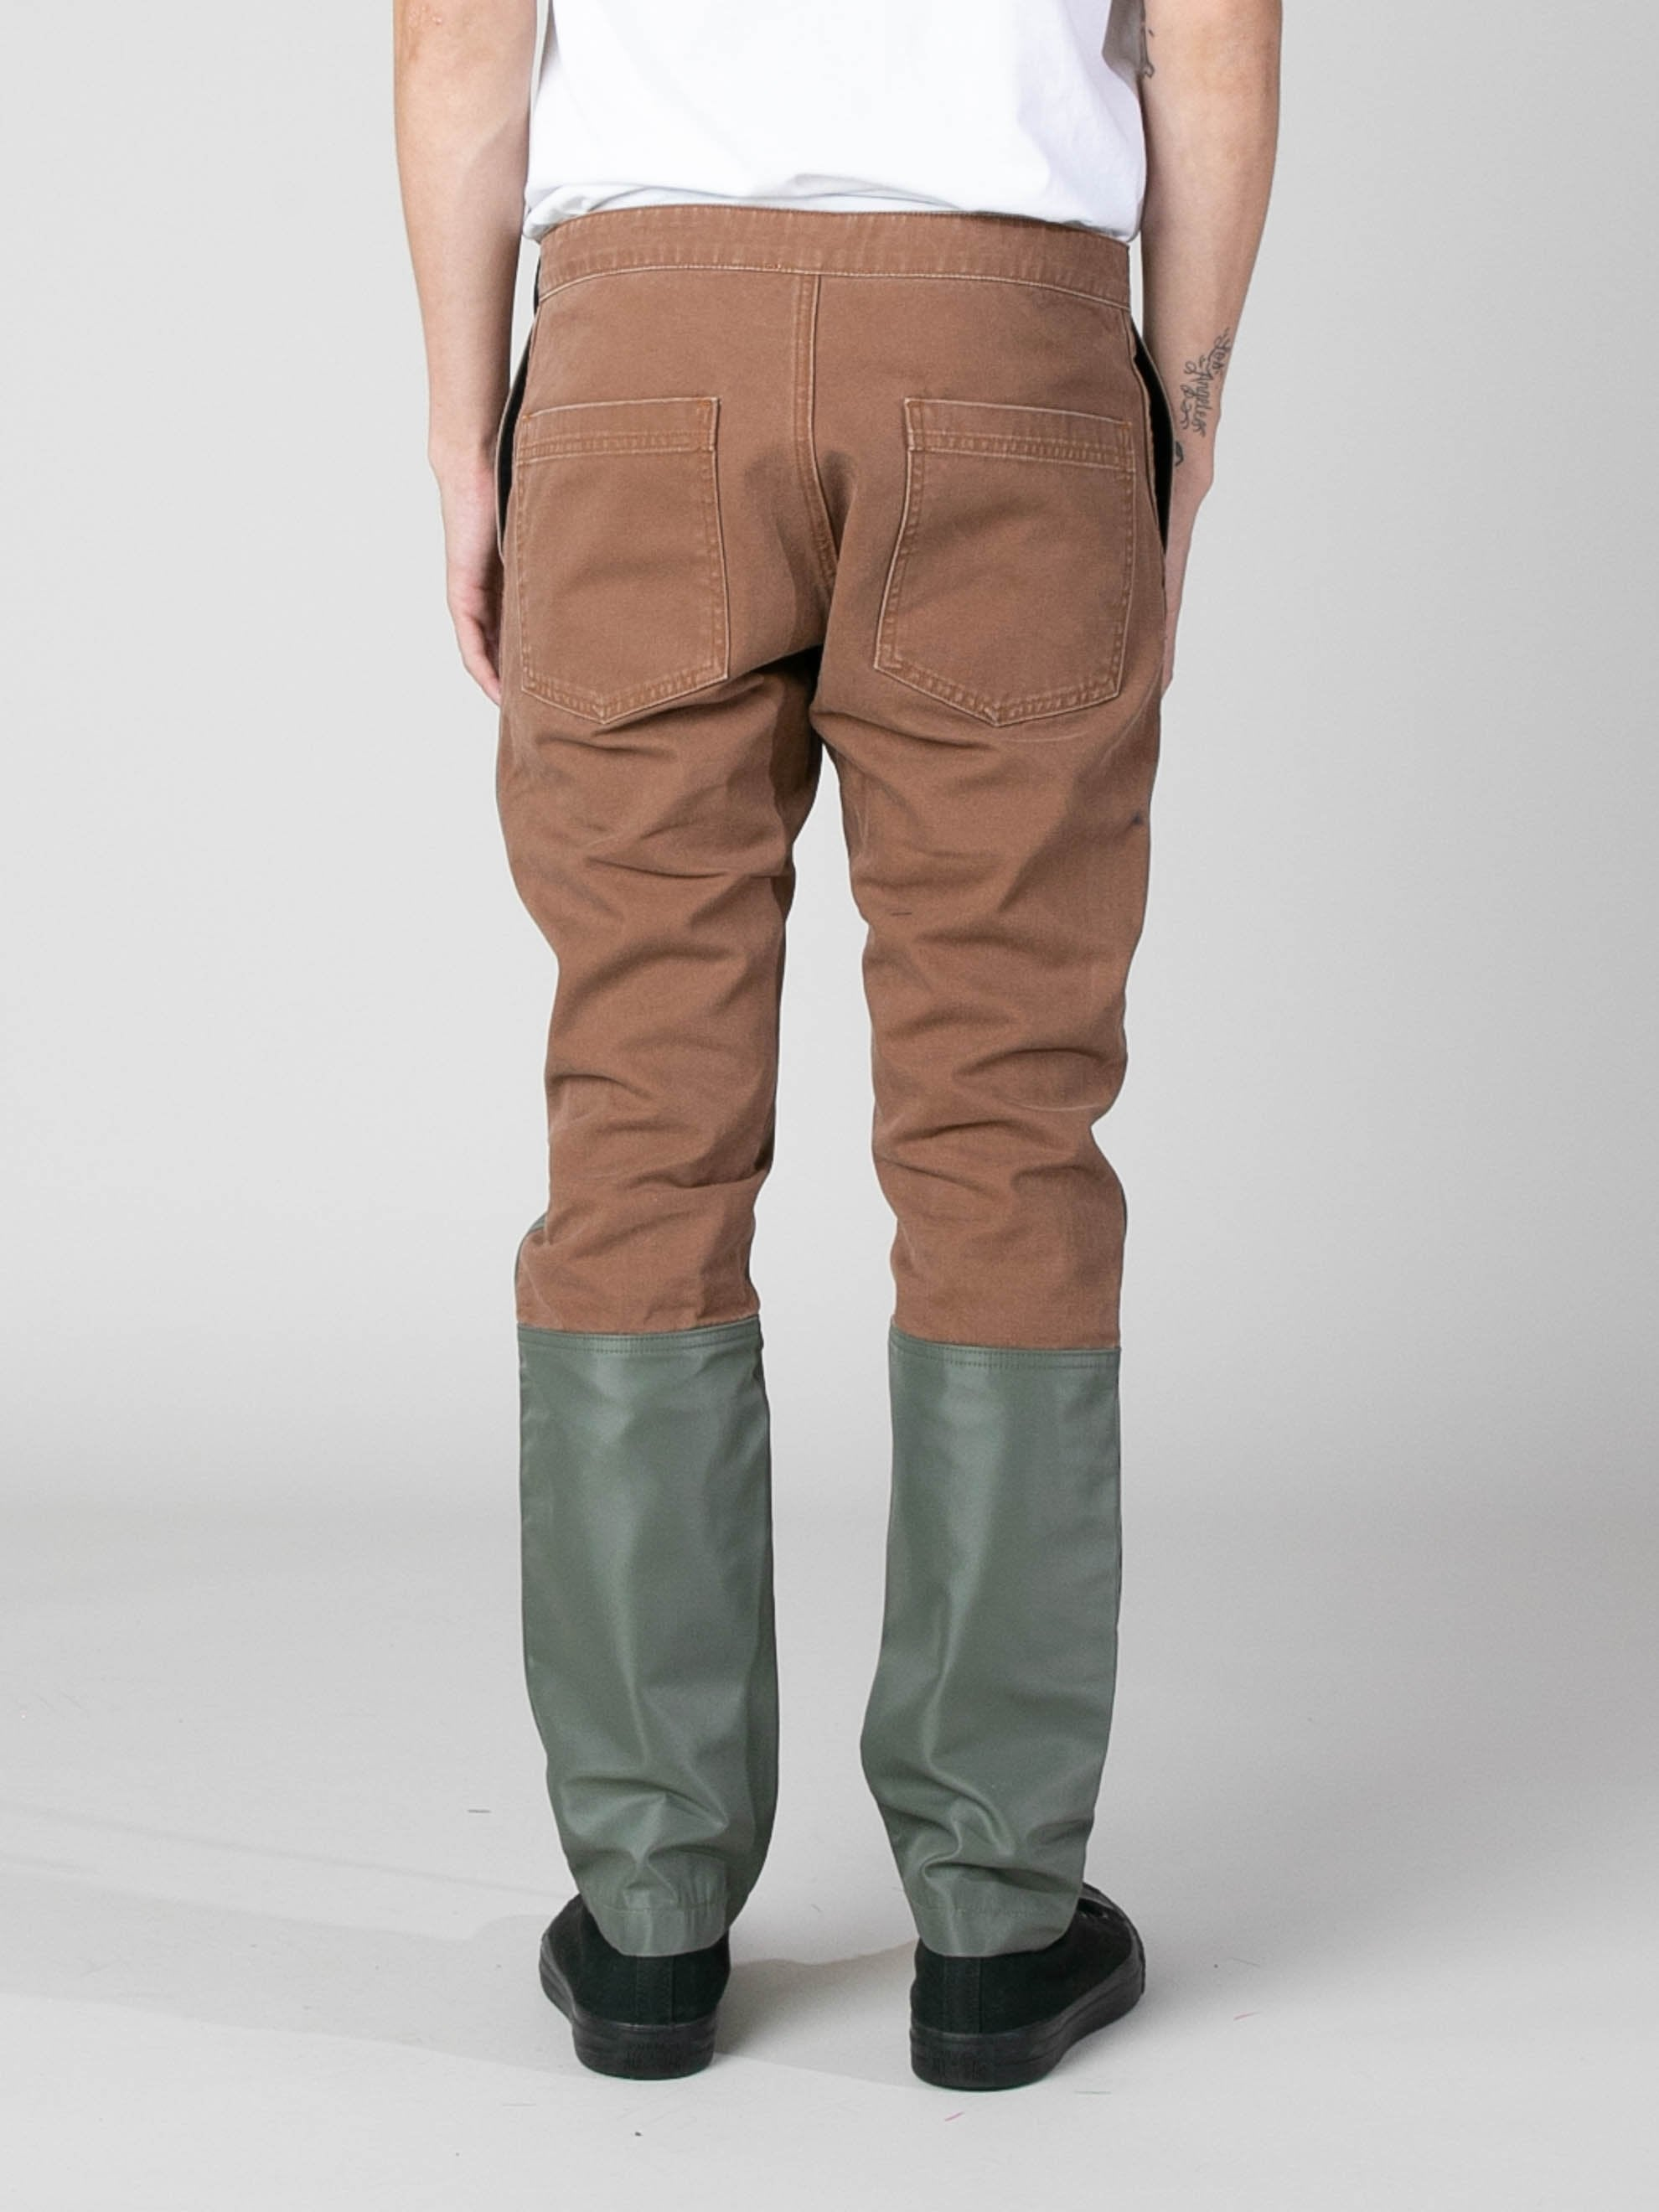 Brick / Army Green Nylon Canvas Double Front Work Pant 5